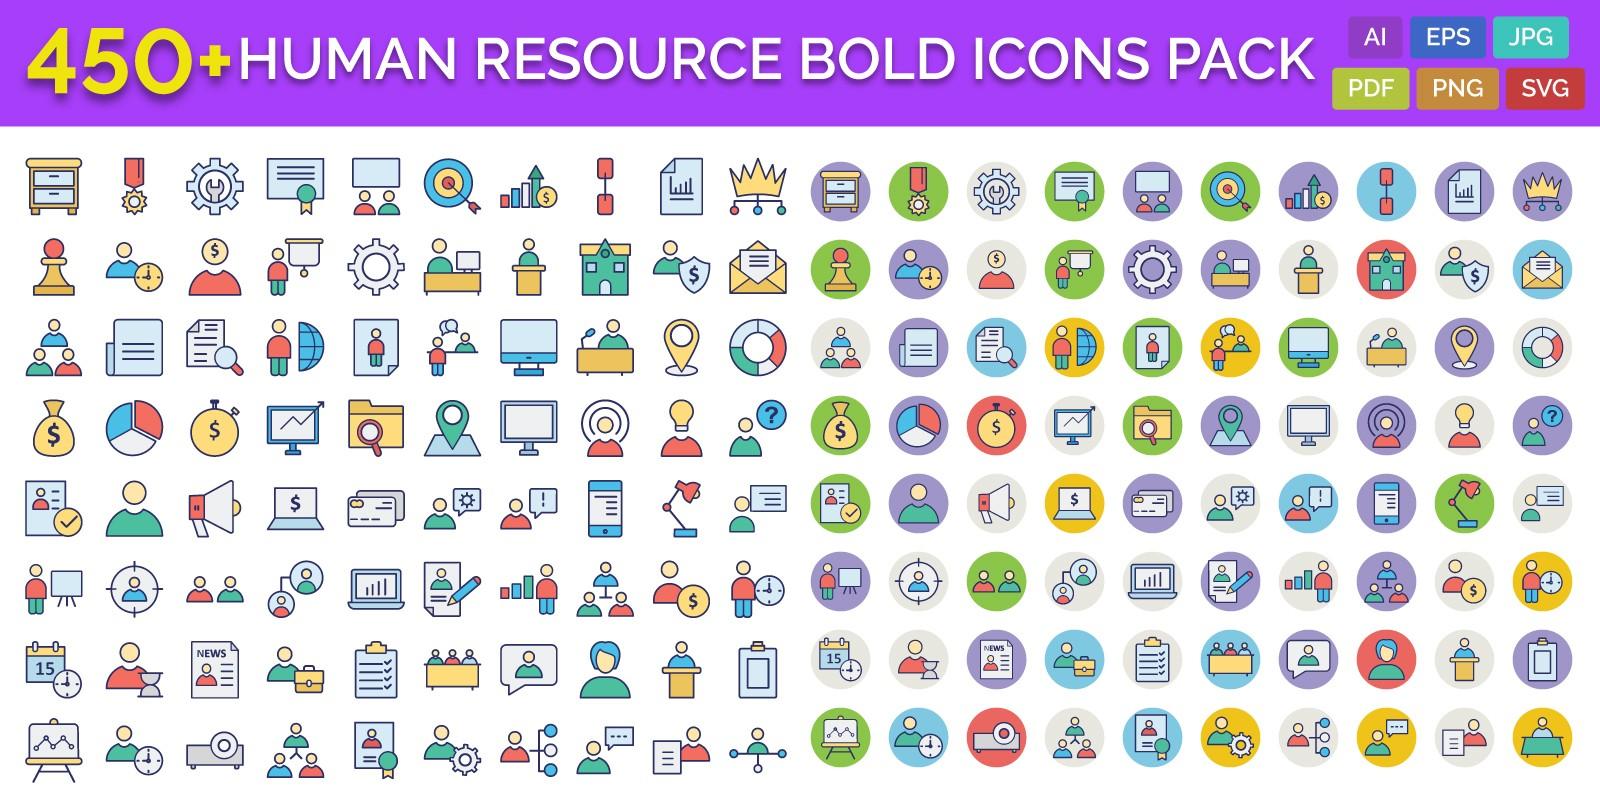 450 Human Resource Bold Outline Vector Icons Pack